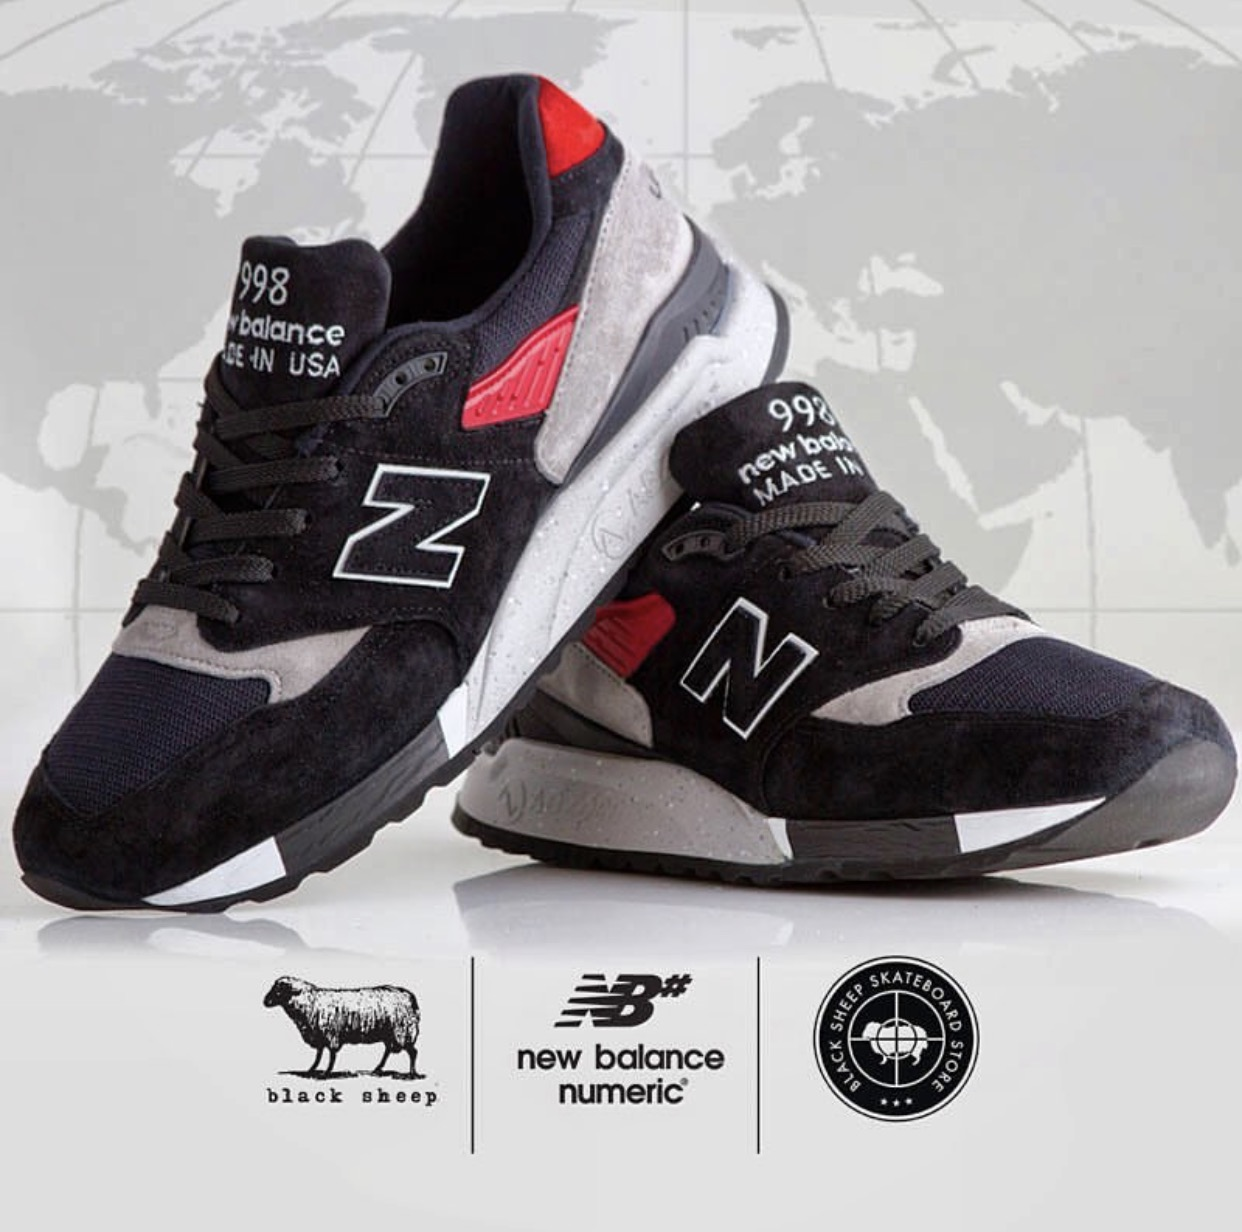 new balance black sheep